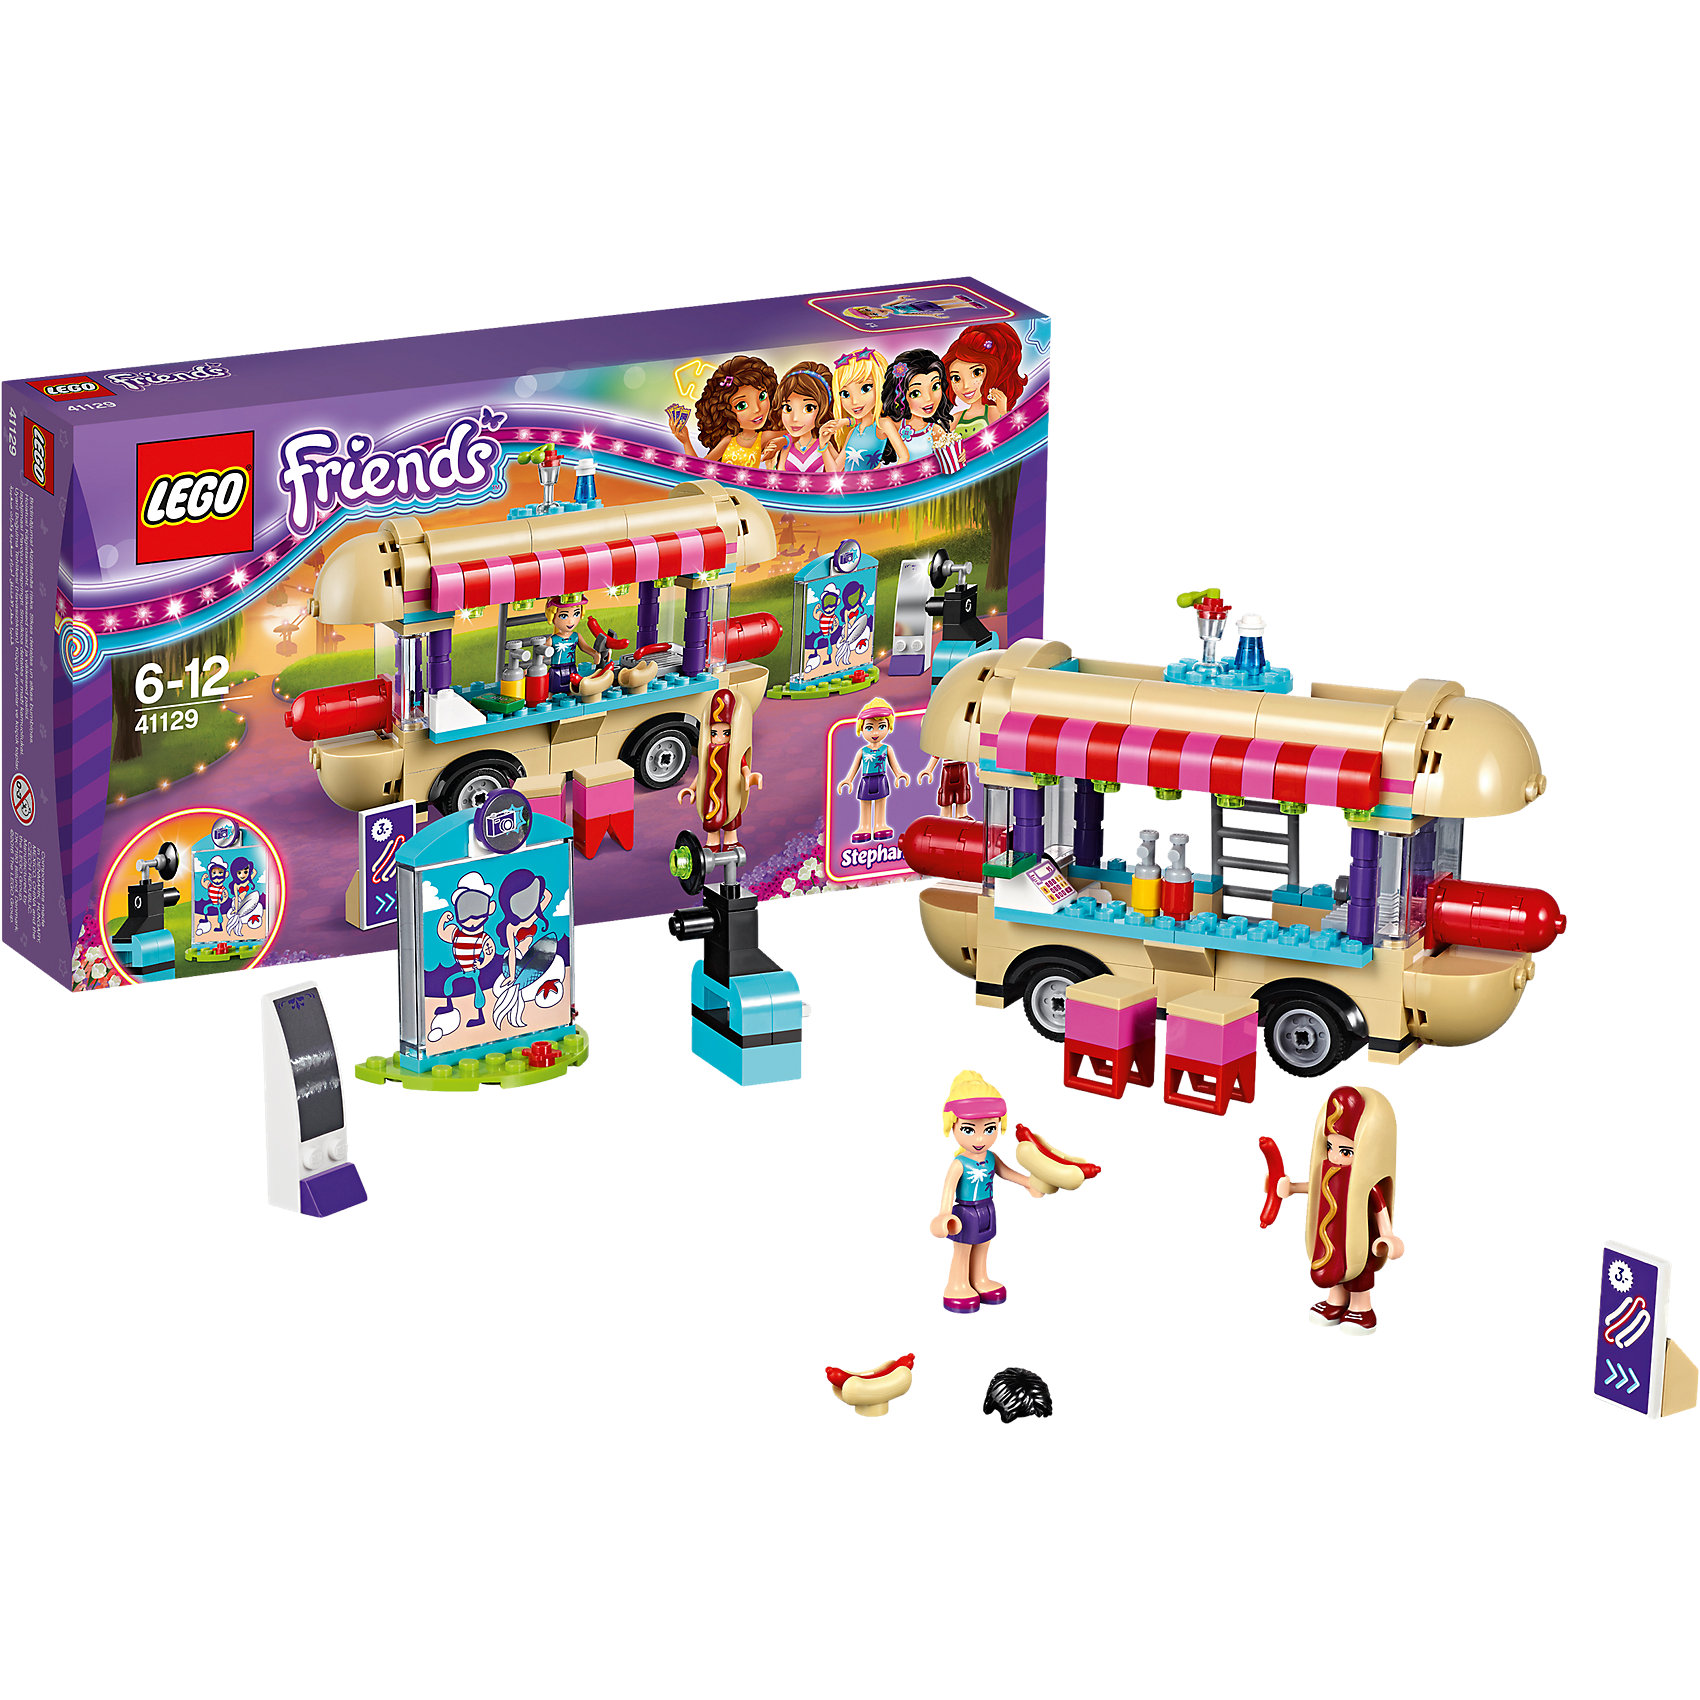 LEGO LEGO Friends 41129: Парк развлечений: фургон с хот-догами lego friends 41129 парк развлечений фургон с хот догами